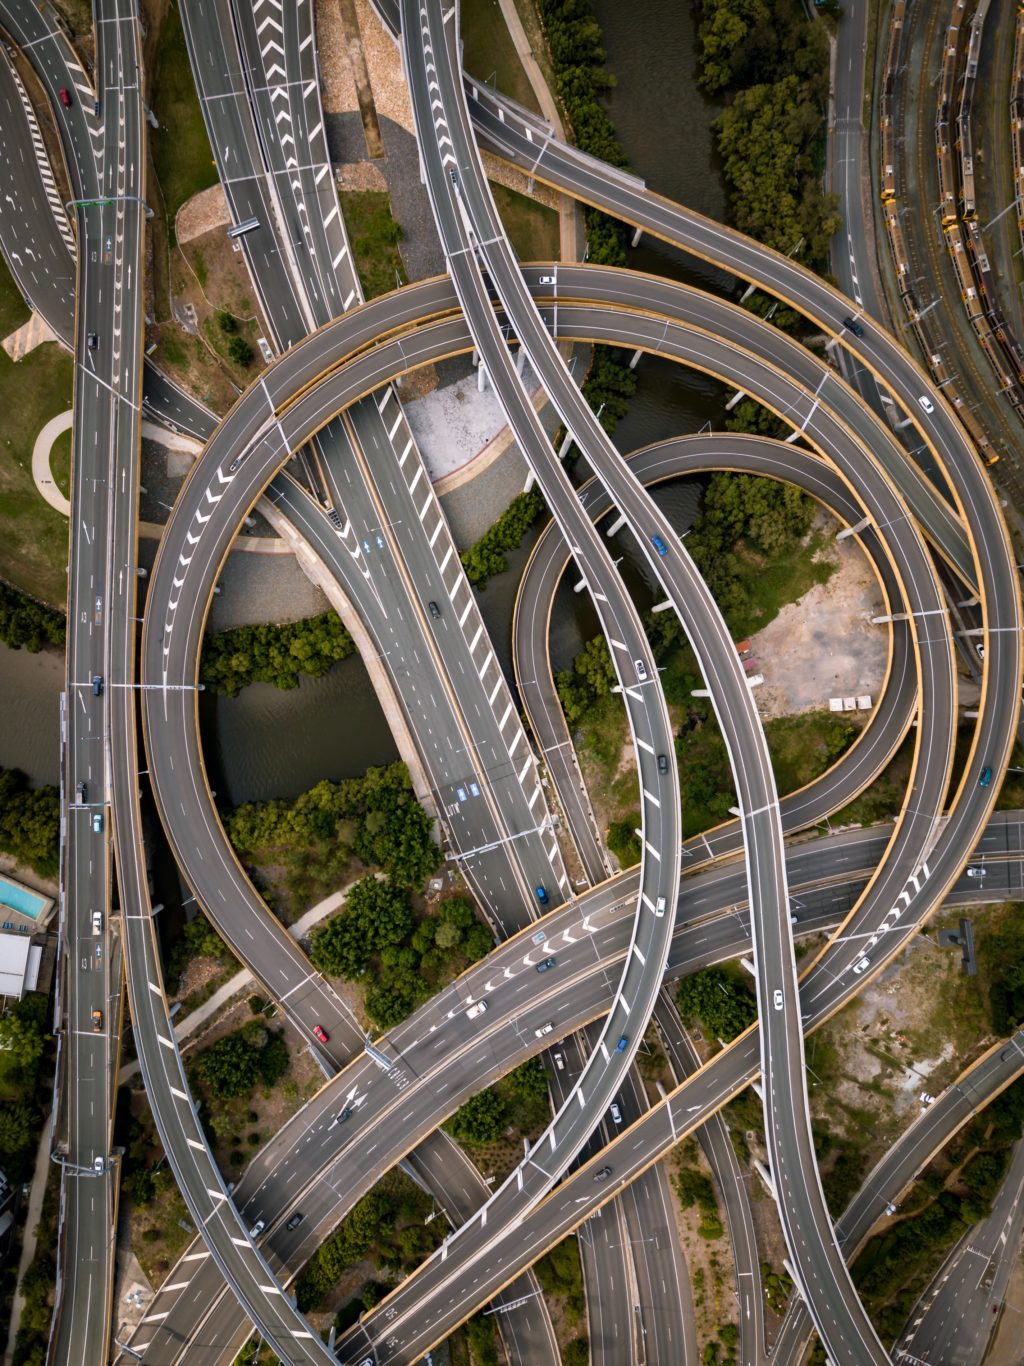 twist of concrete roads' aerial photograph